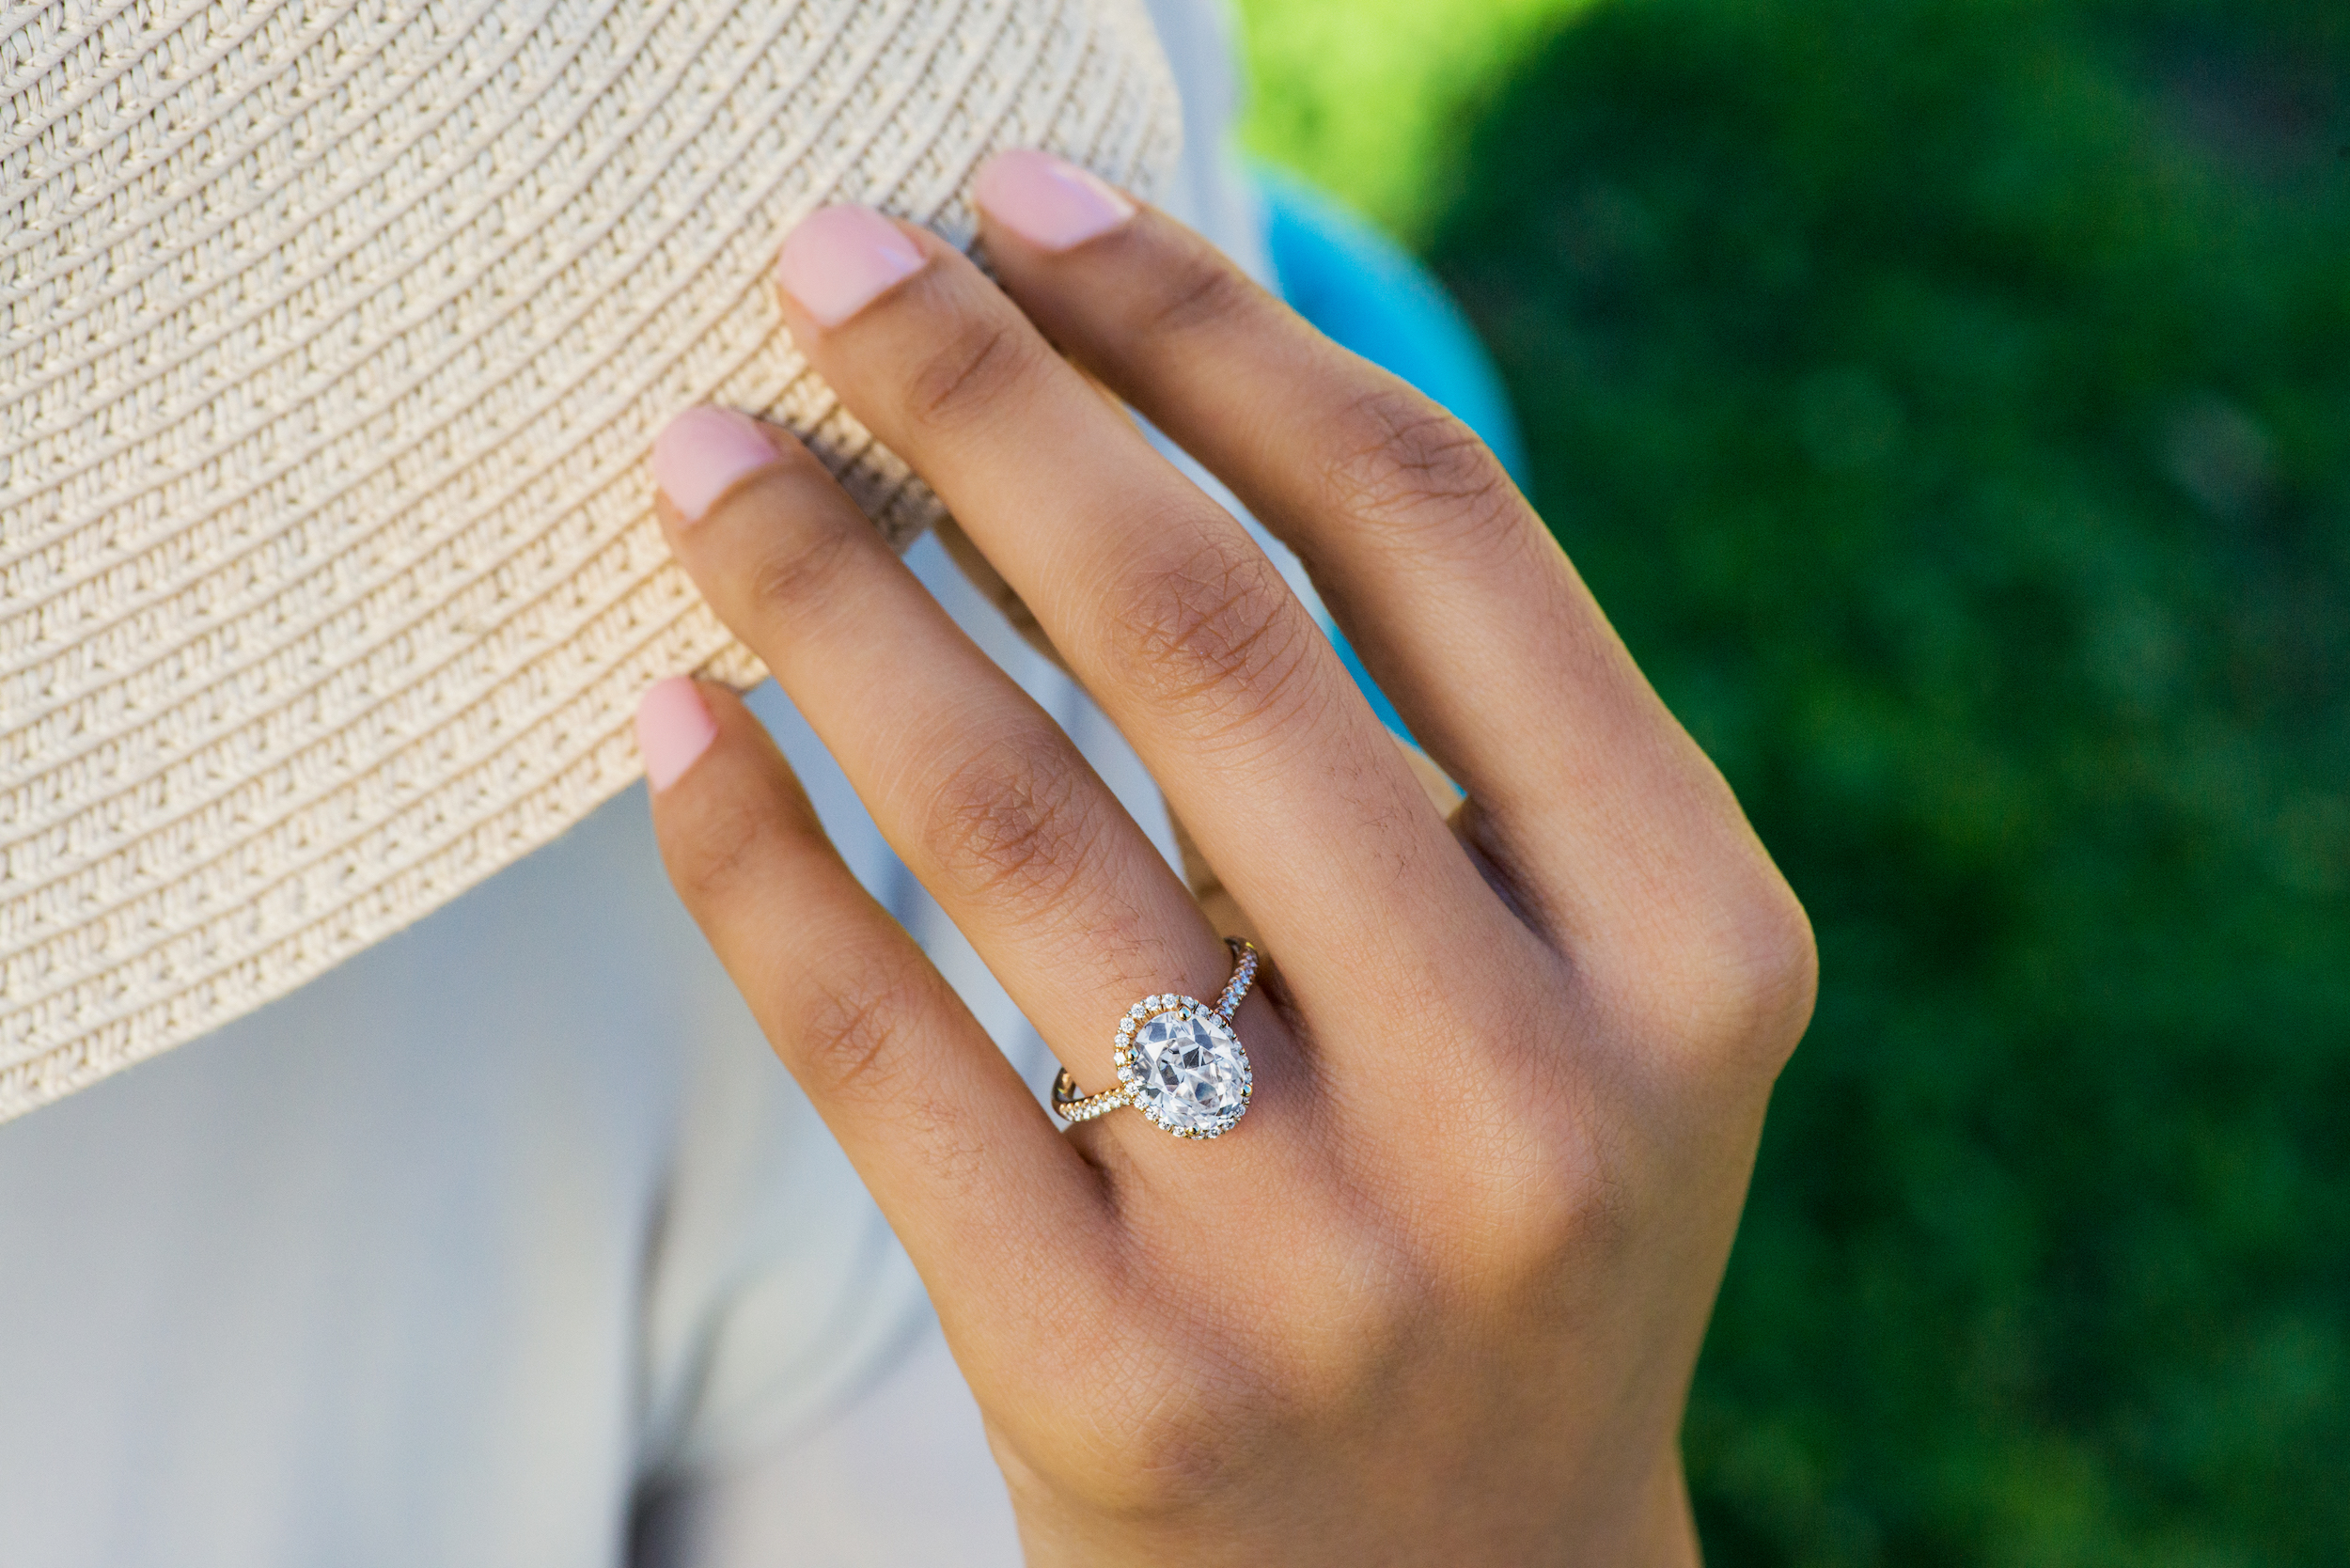 Image 1 of How to Buy a Diamond: 4 C's Diamond Buying Guide